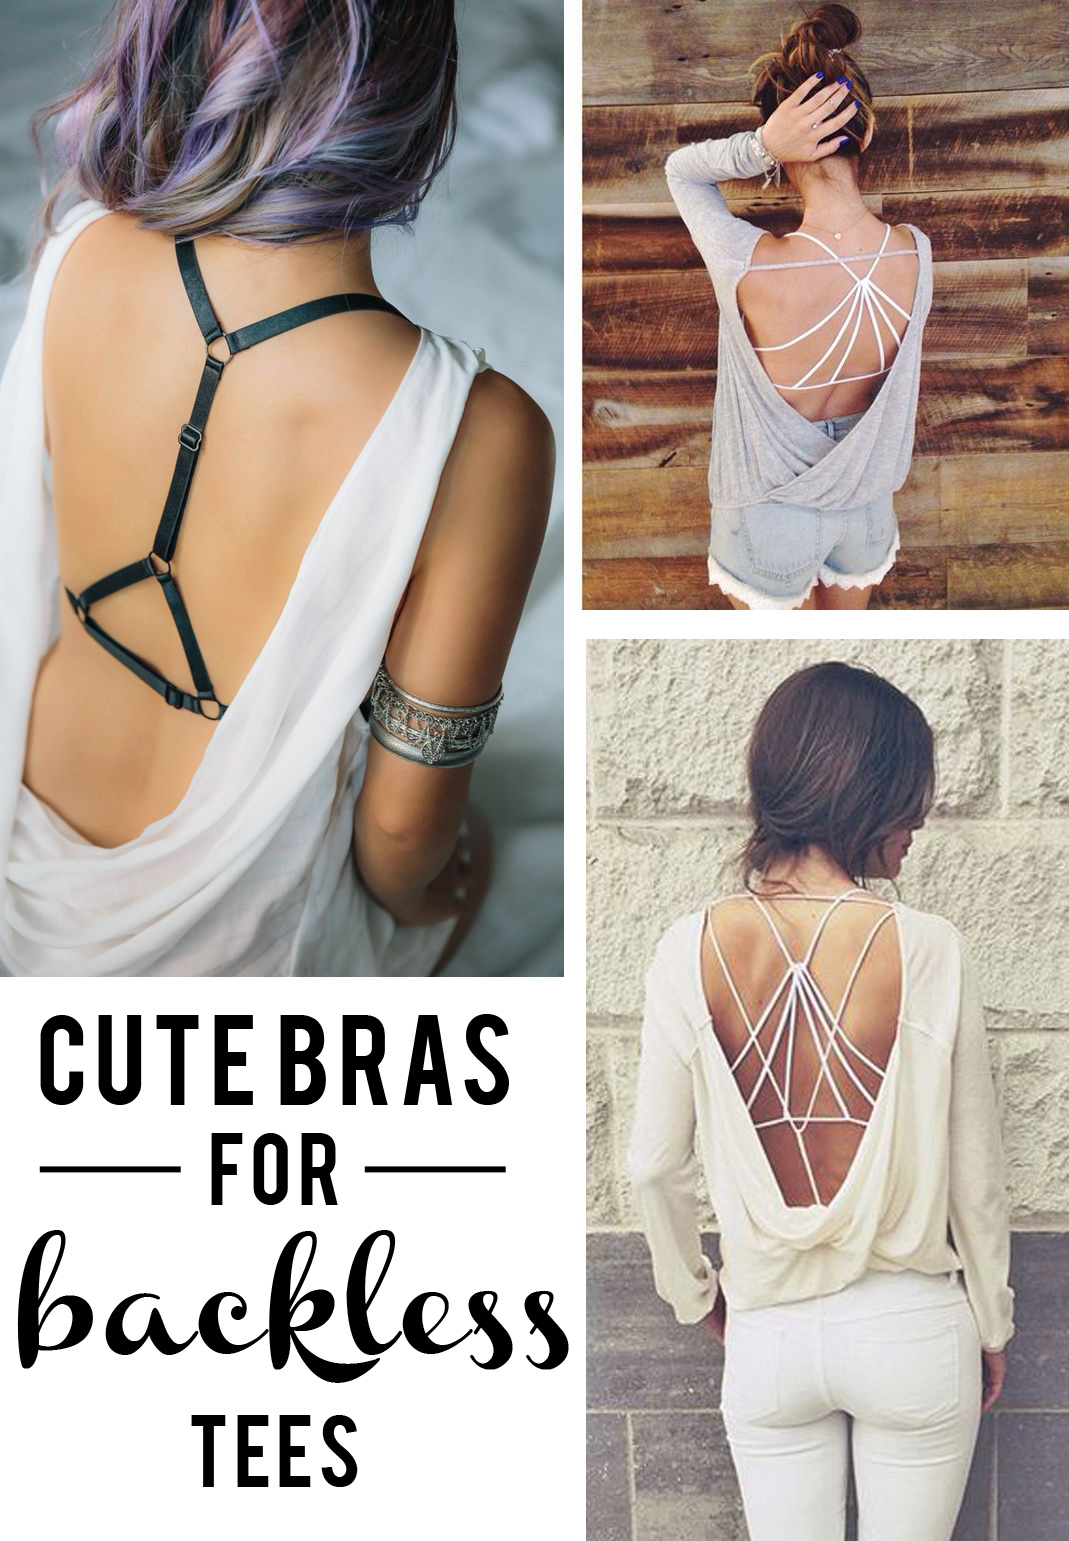 Backless Dress Bra Solutions Diy Nils Stucki Kieferorthopade